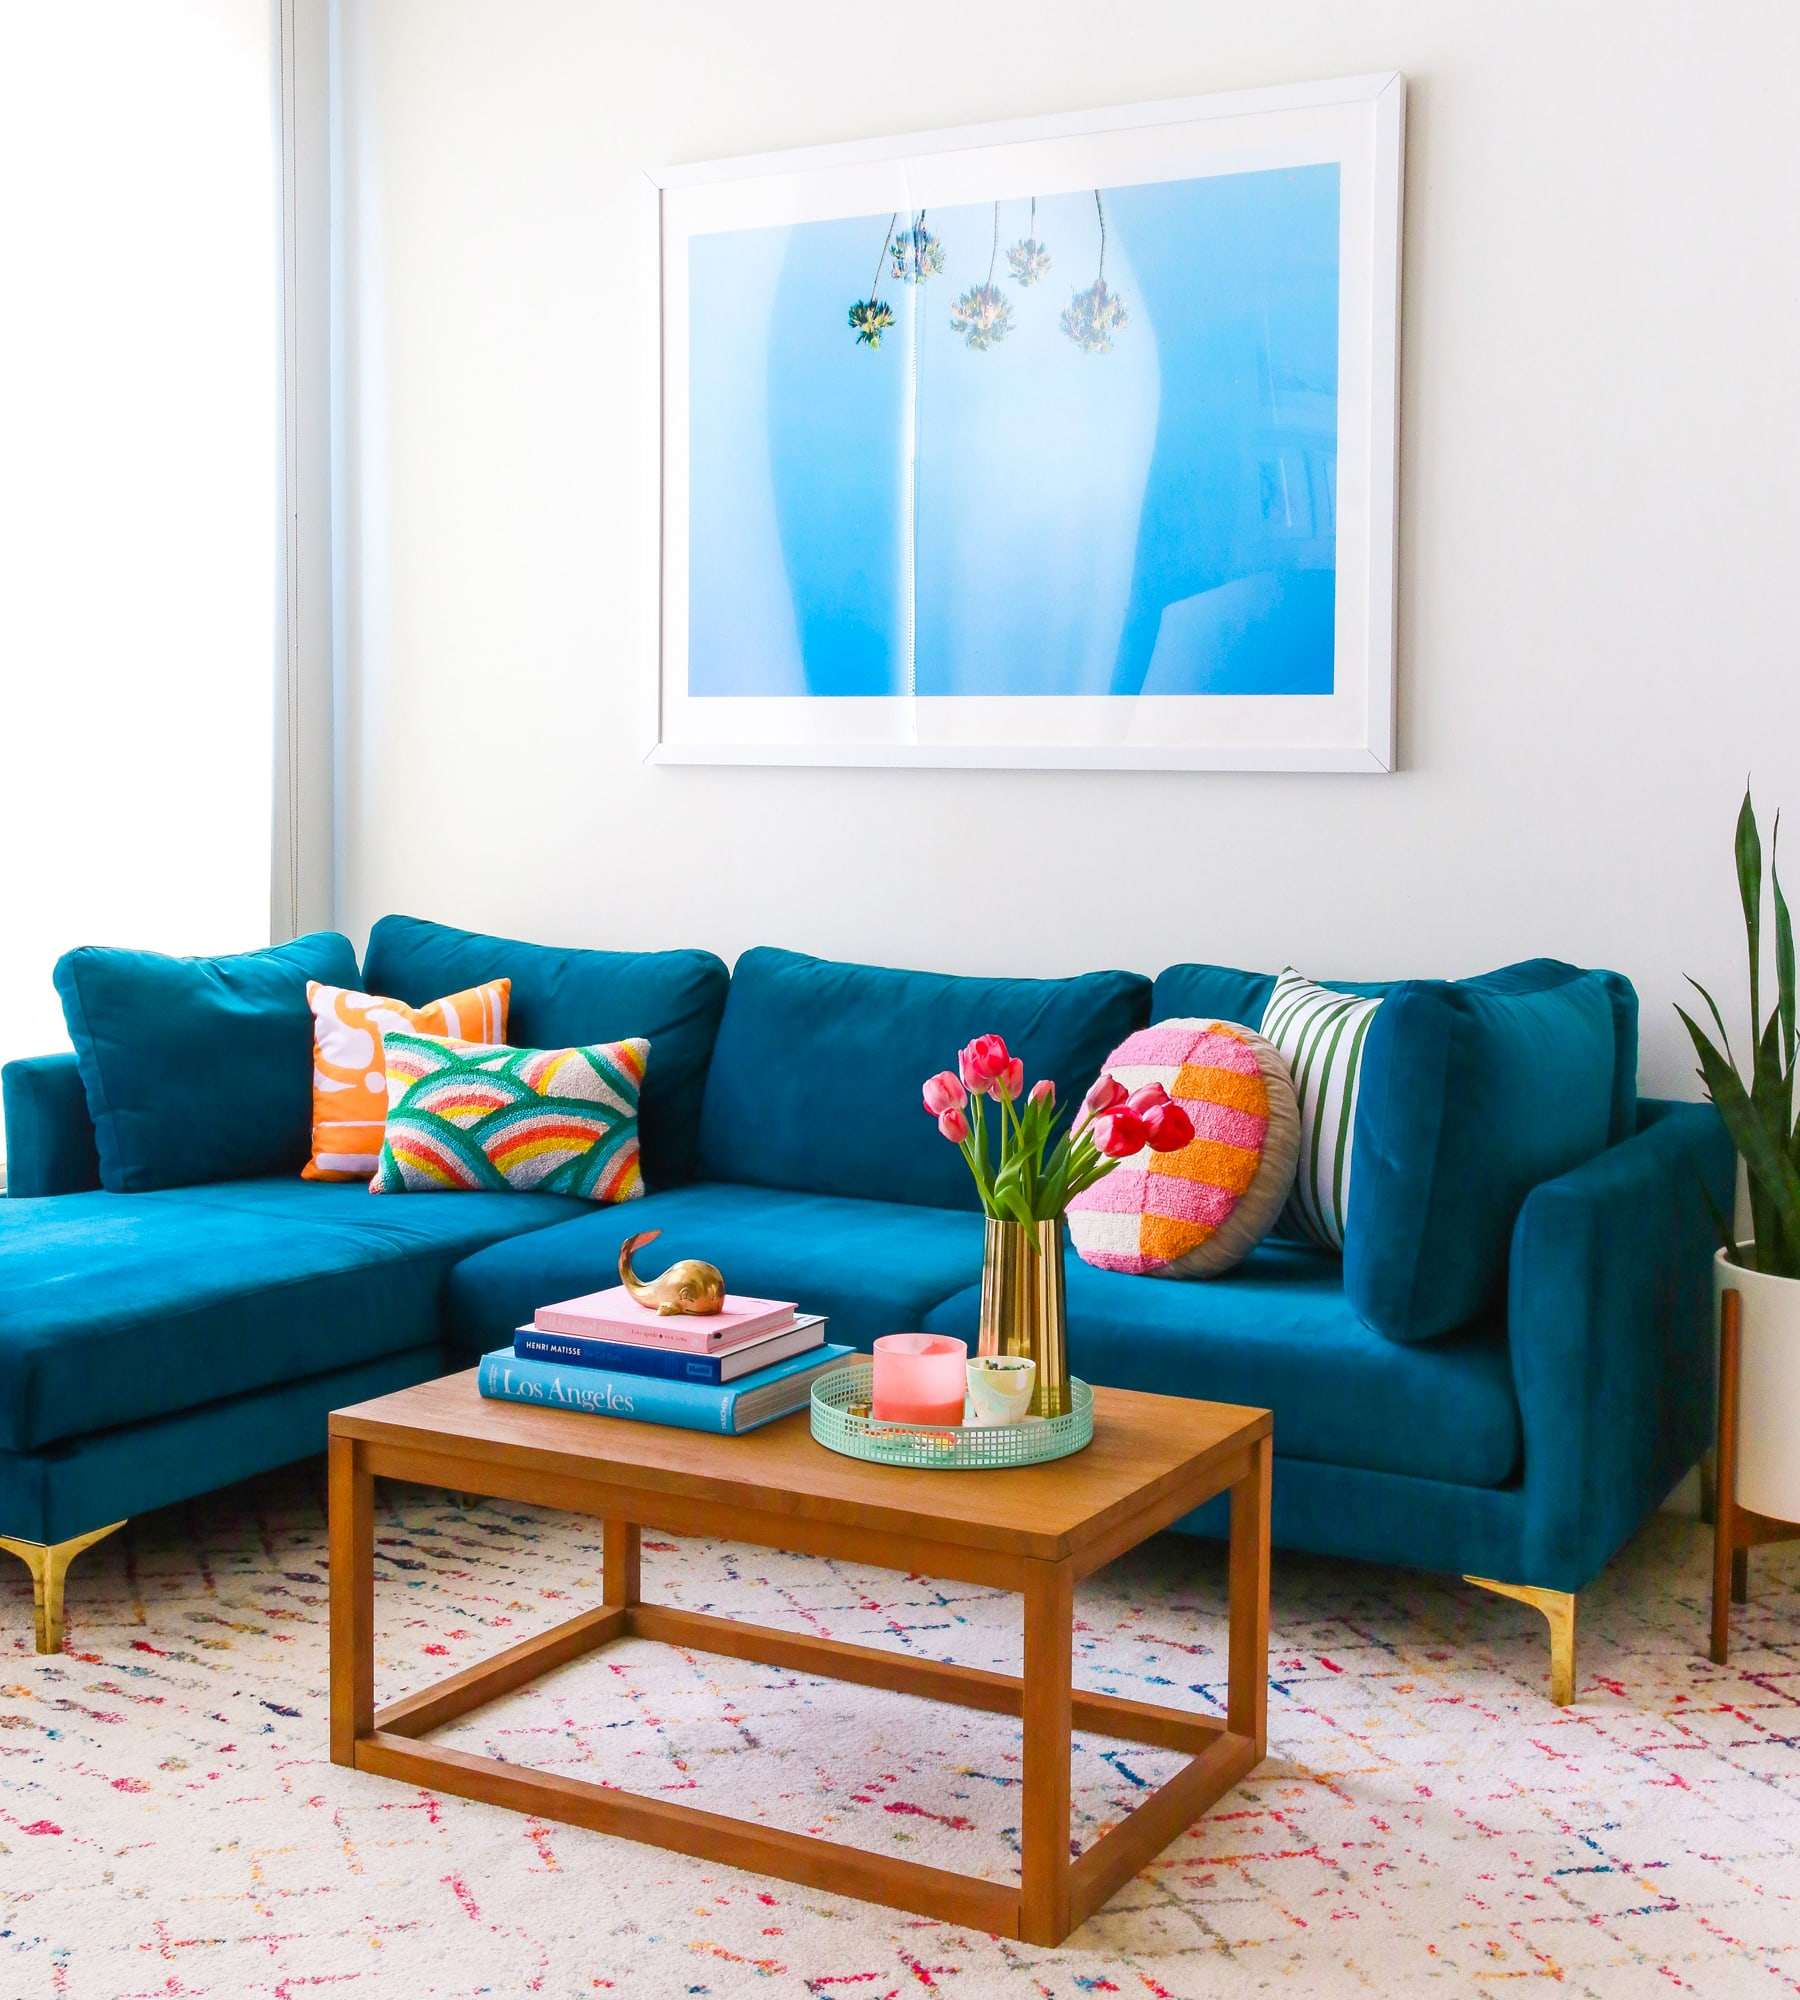 teal velvet sofa, coffee table, potted plant and rainbow print rug in a brightly lit living room